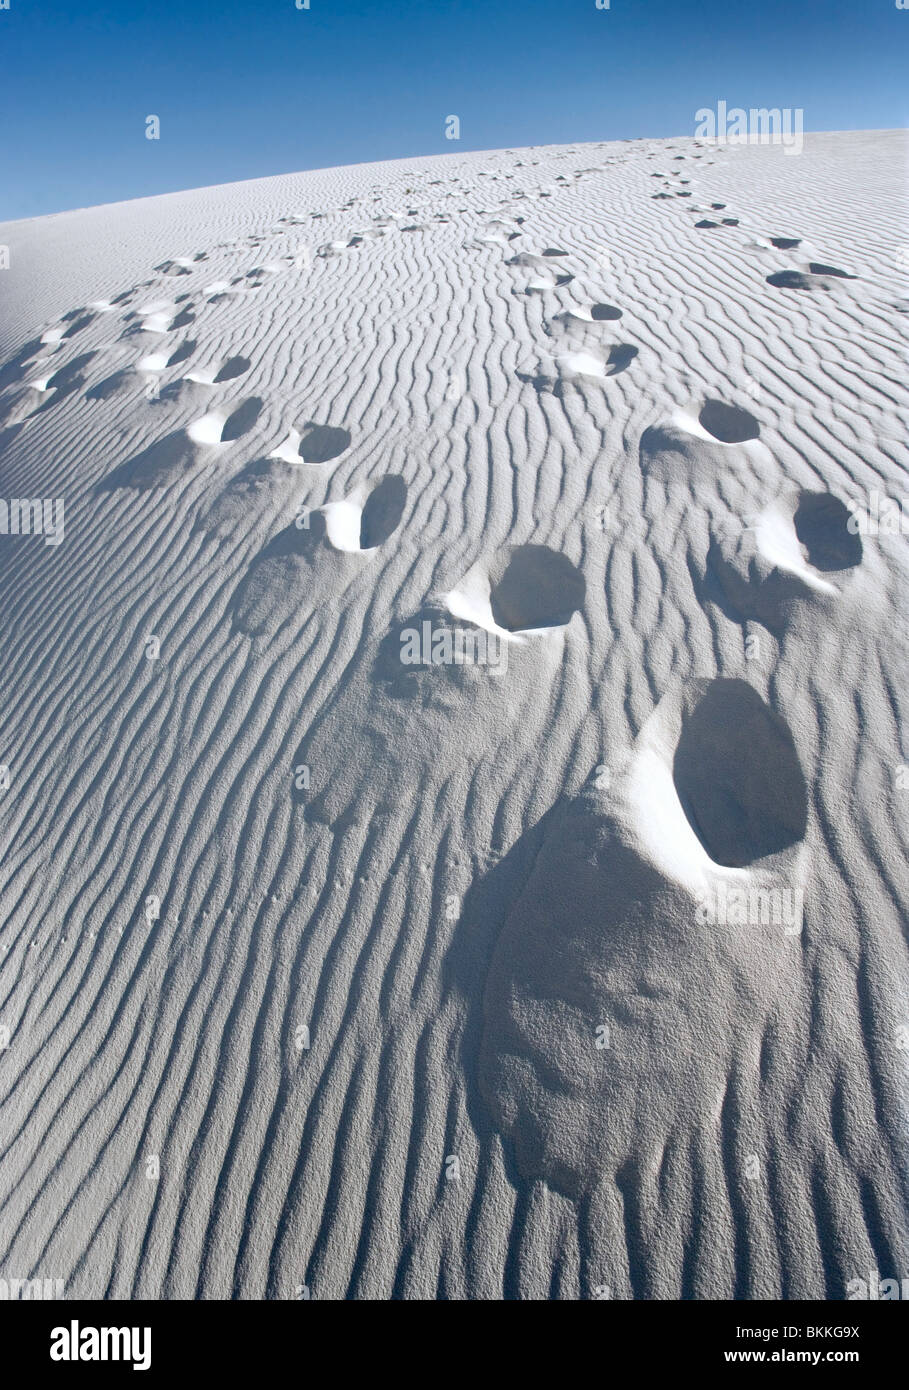 Footprints on a large white sand dune at White Sands National Monument, New Mexico. - Stock Image